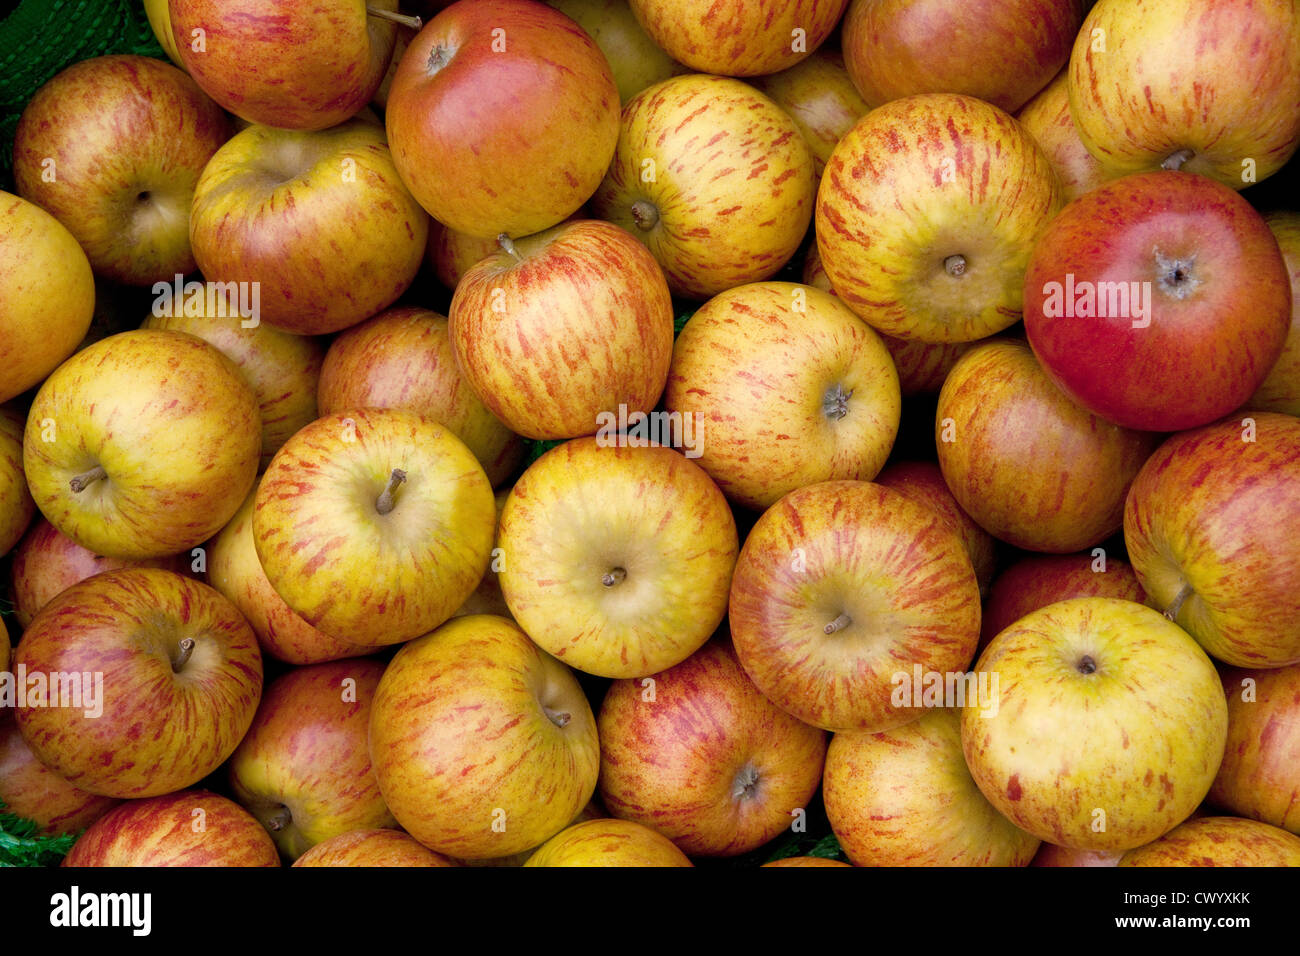 A pile of apples, a mix of laxtons fortune and ingrid marie - Stock Image